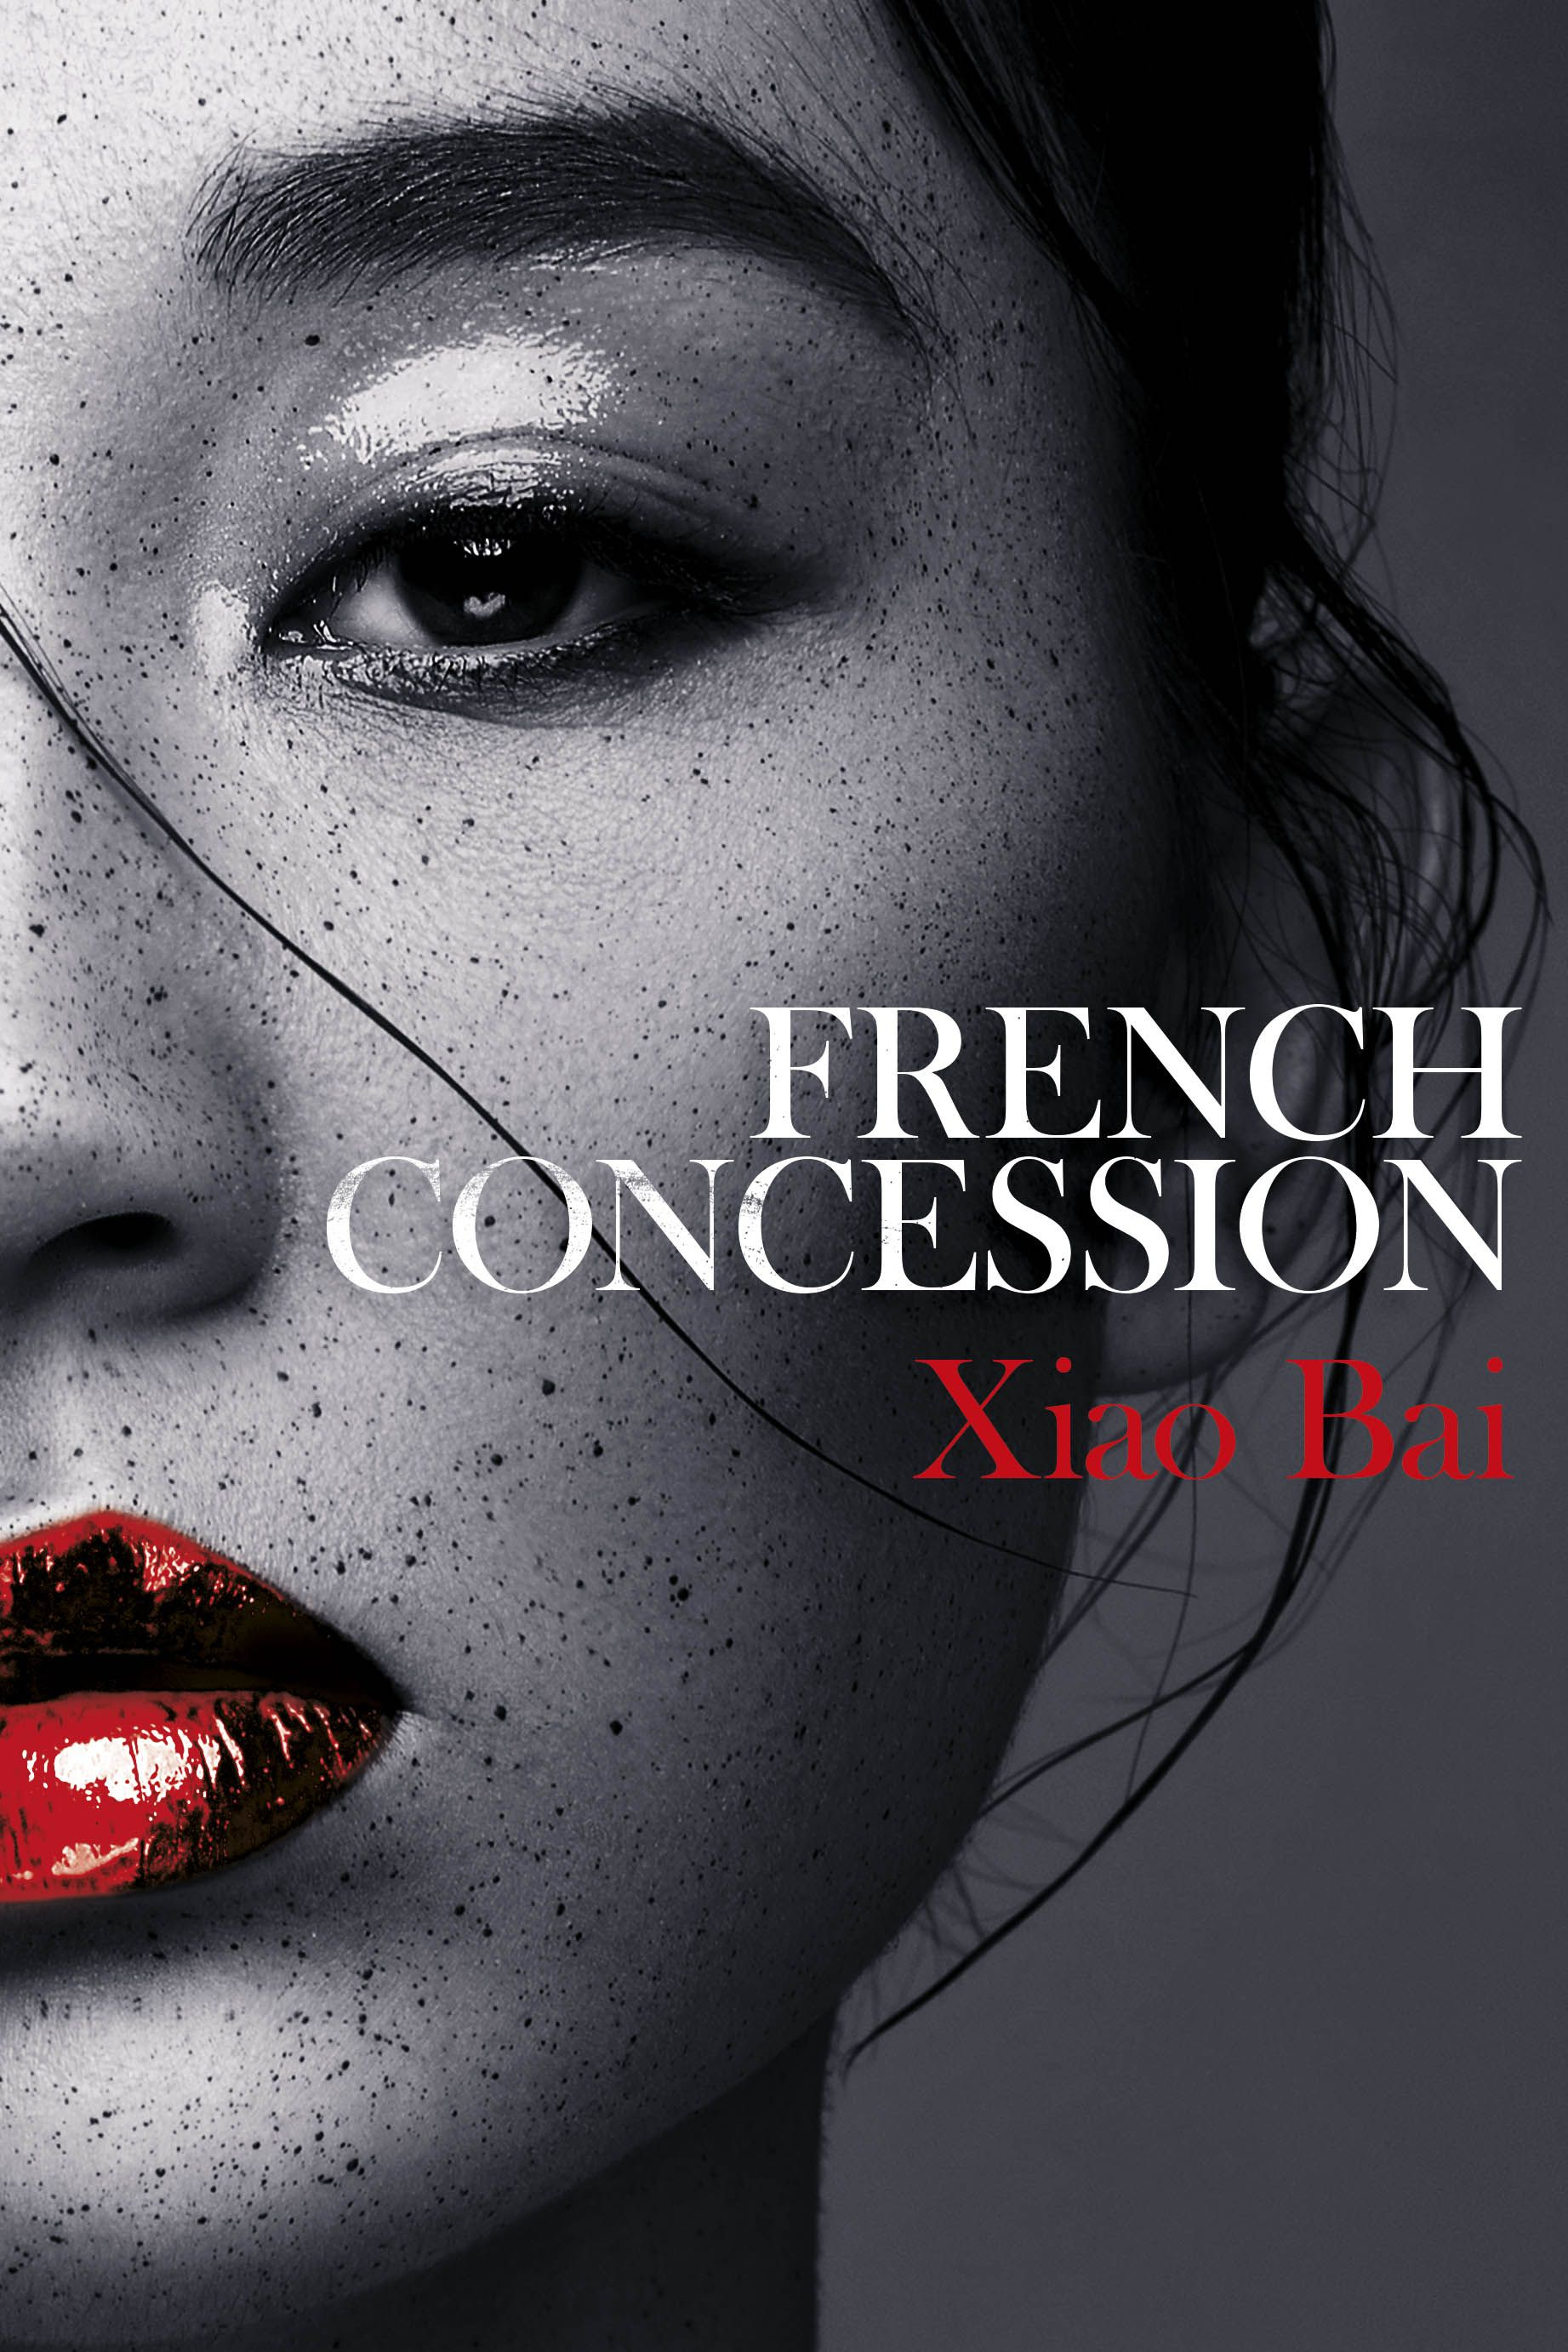 French Concession By Xiao Bai Fire Book Books Novels To Read